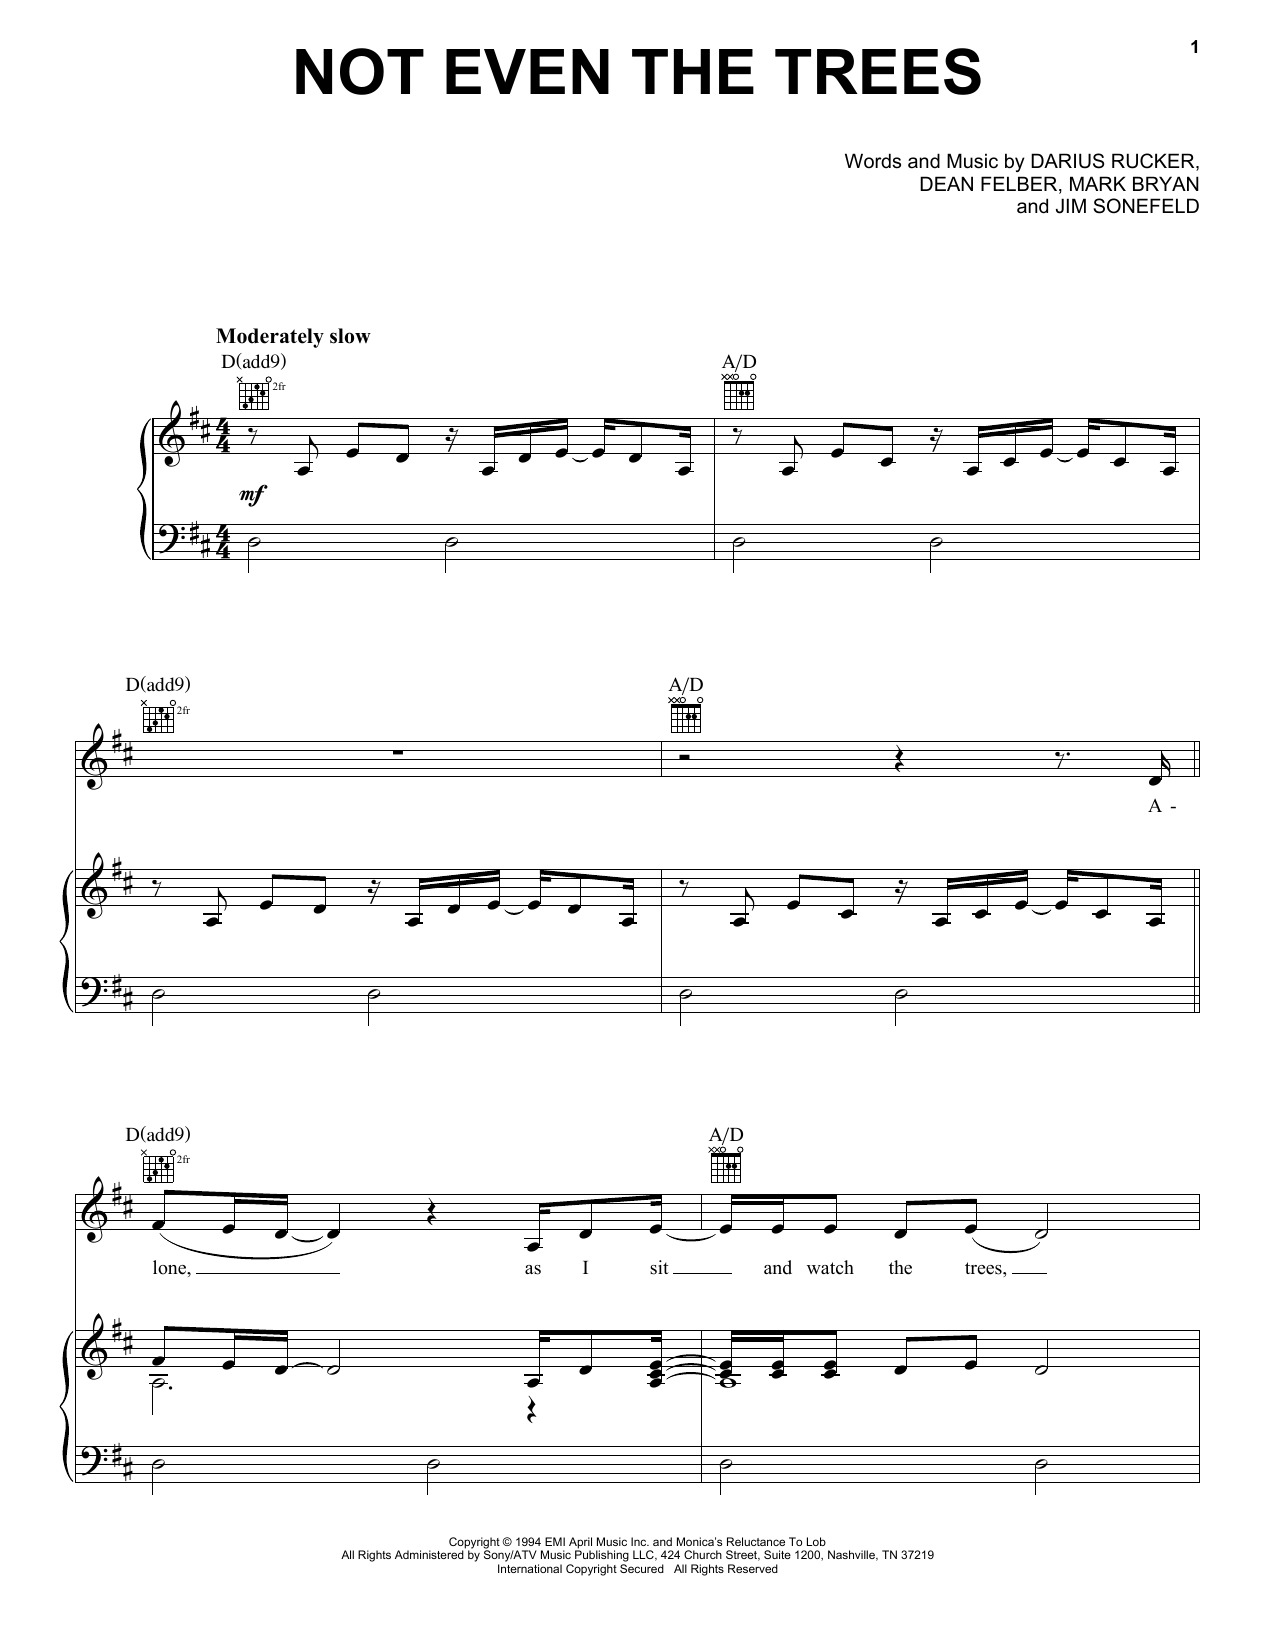 Hootie & The Blowfish Not Even The Trees sheet music notes and chords. Download Printable PDF.